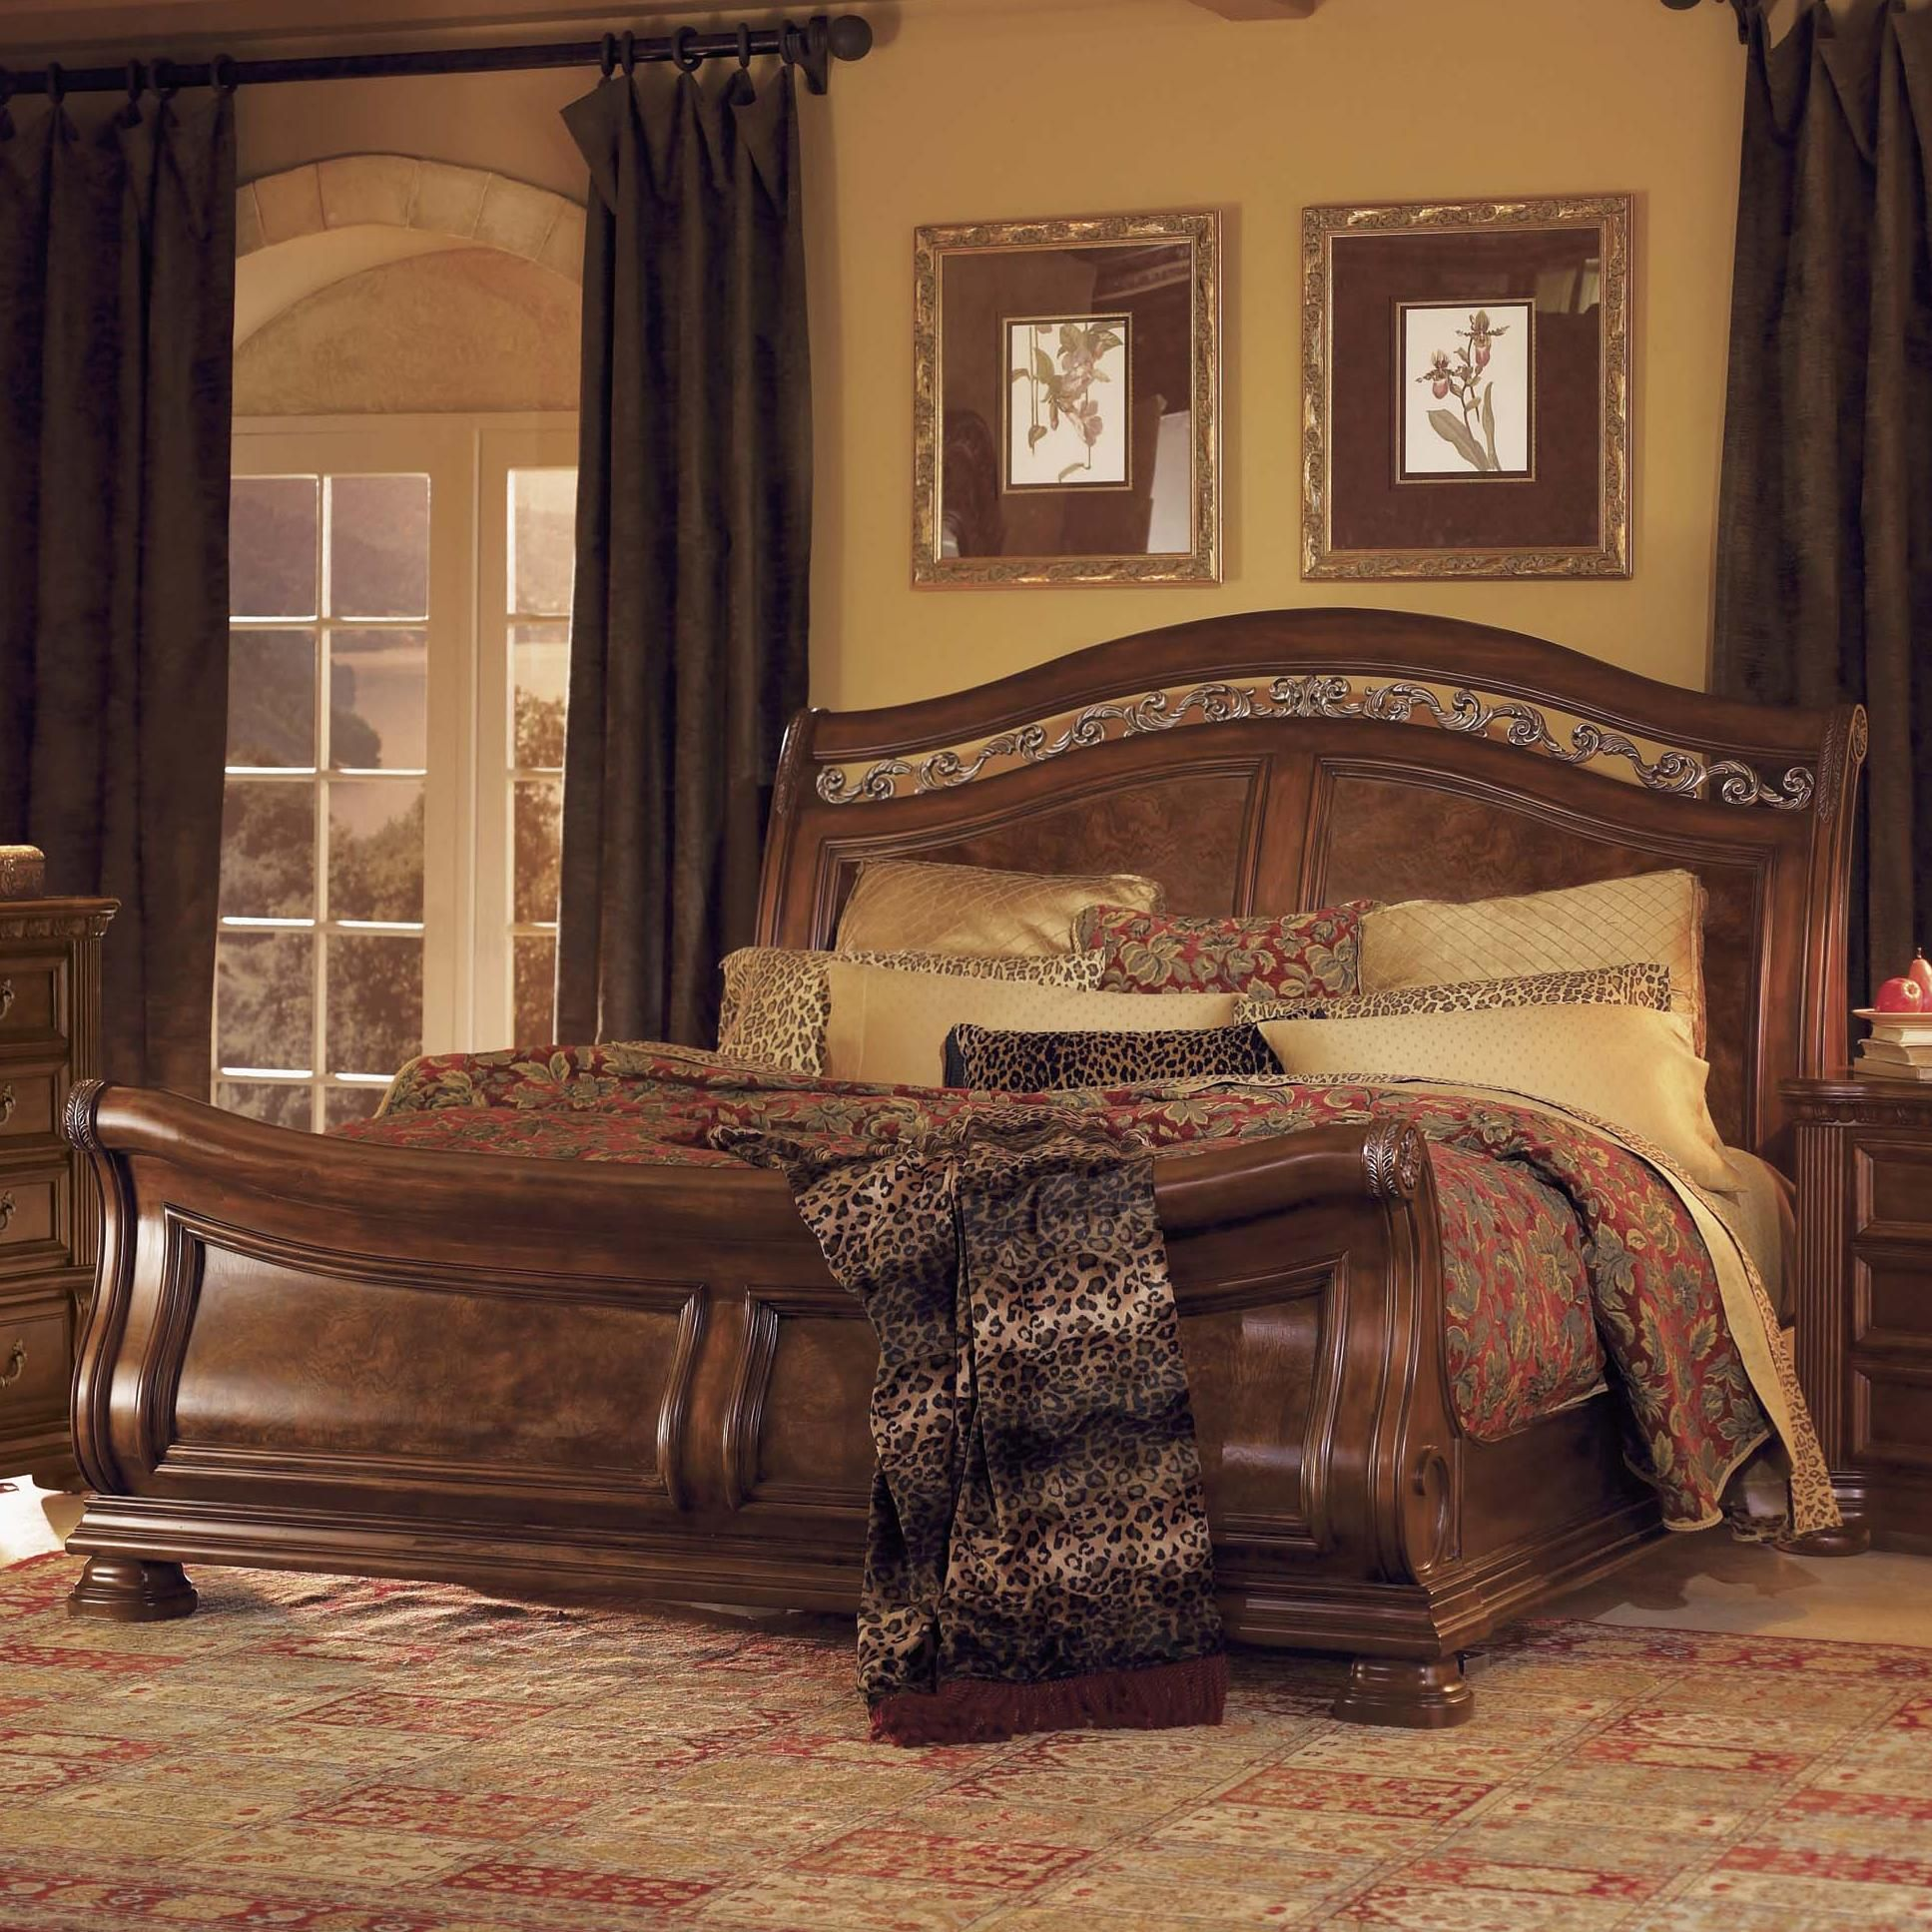 Granada king sleigh bed by flexsteel wynwood collection for King sleigh bed bedroom sets